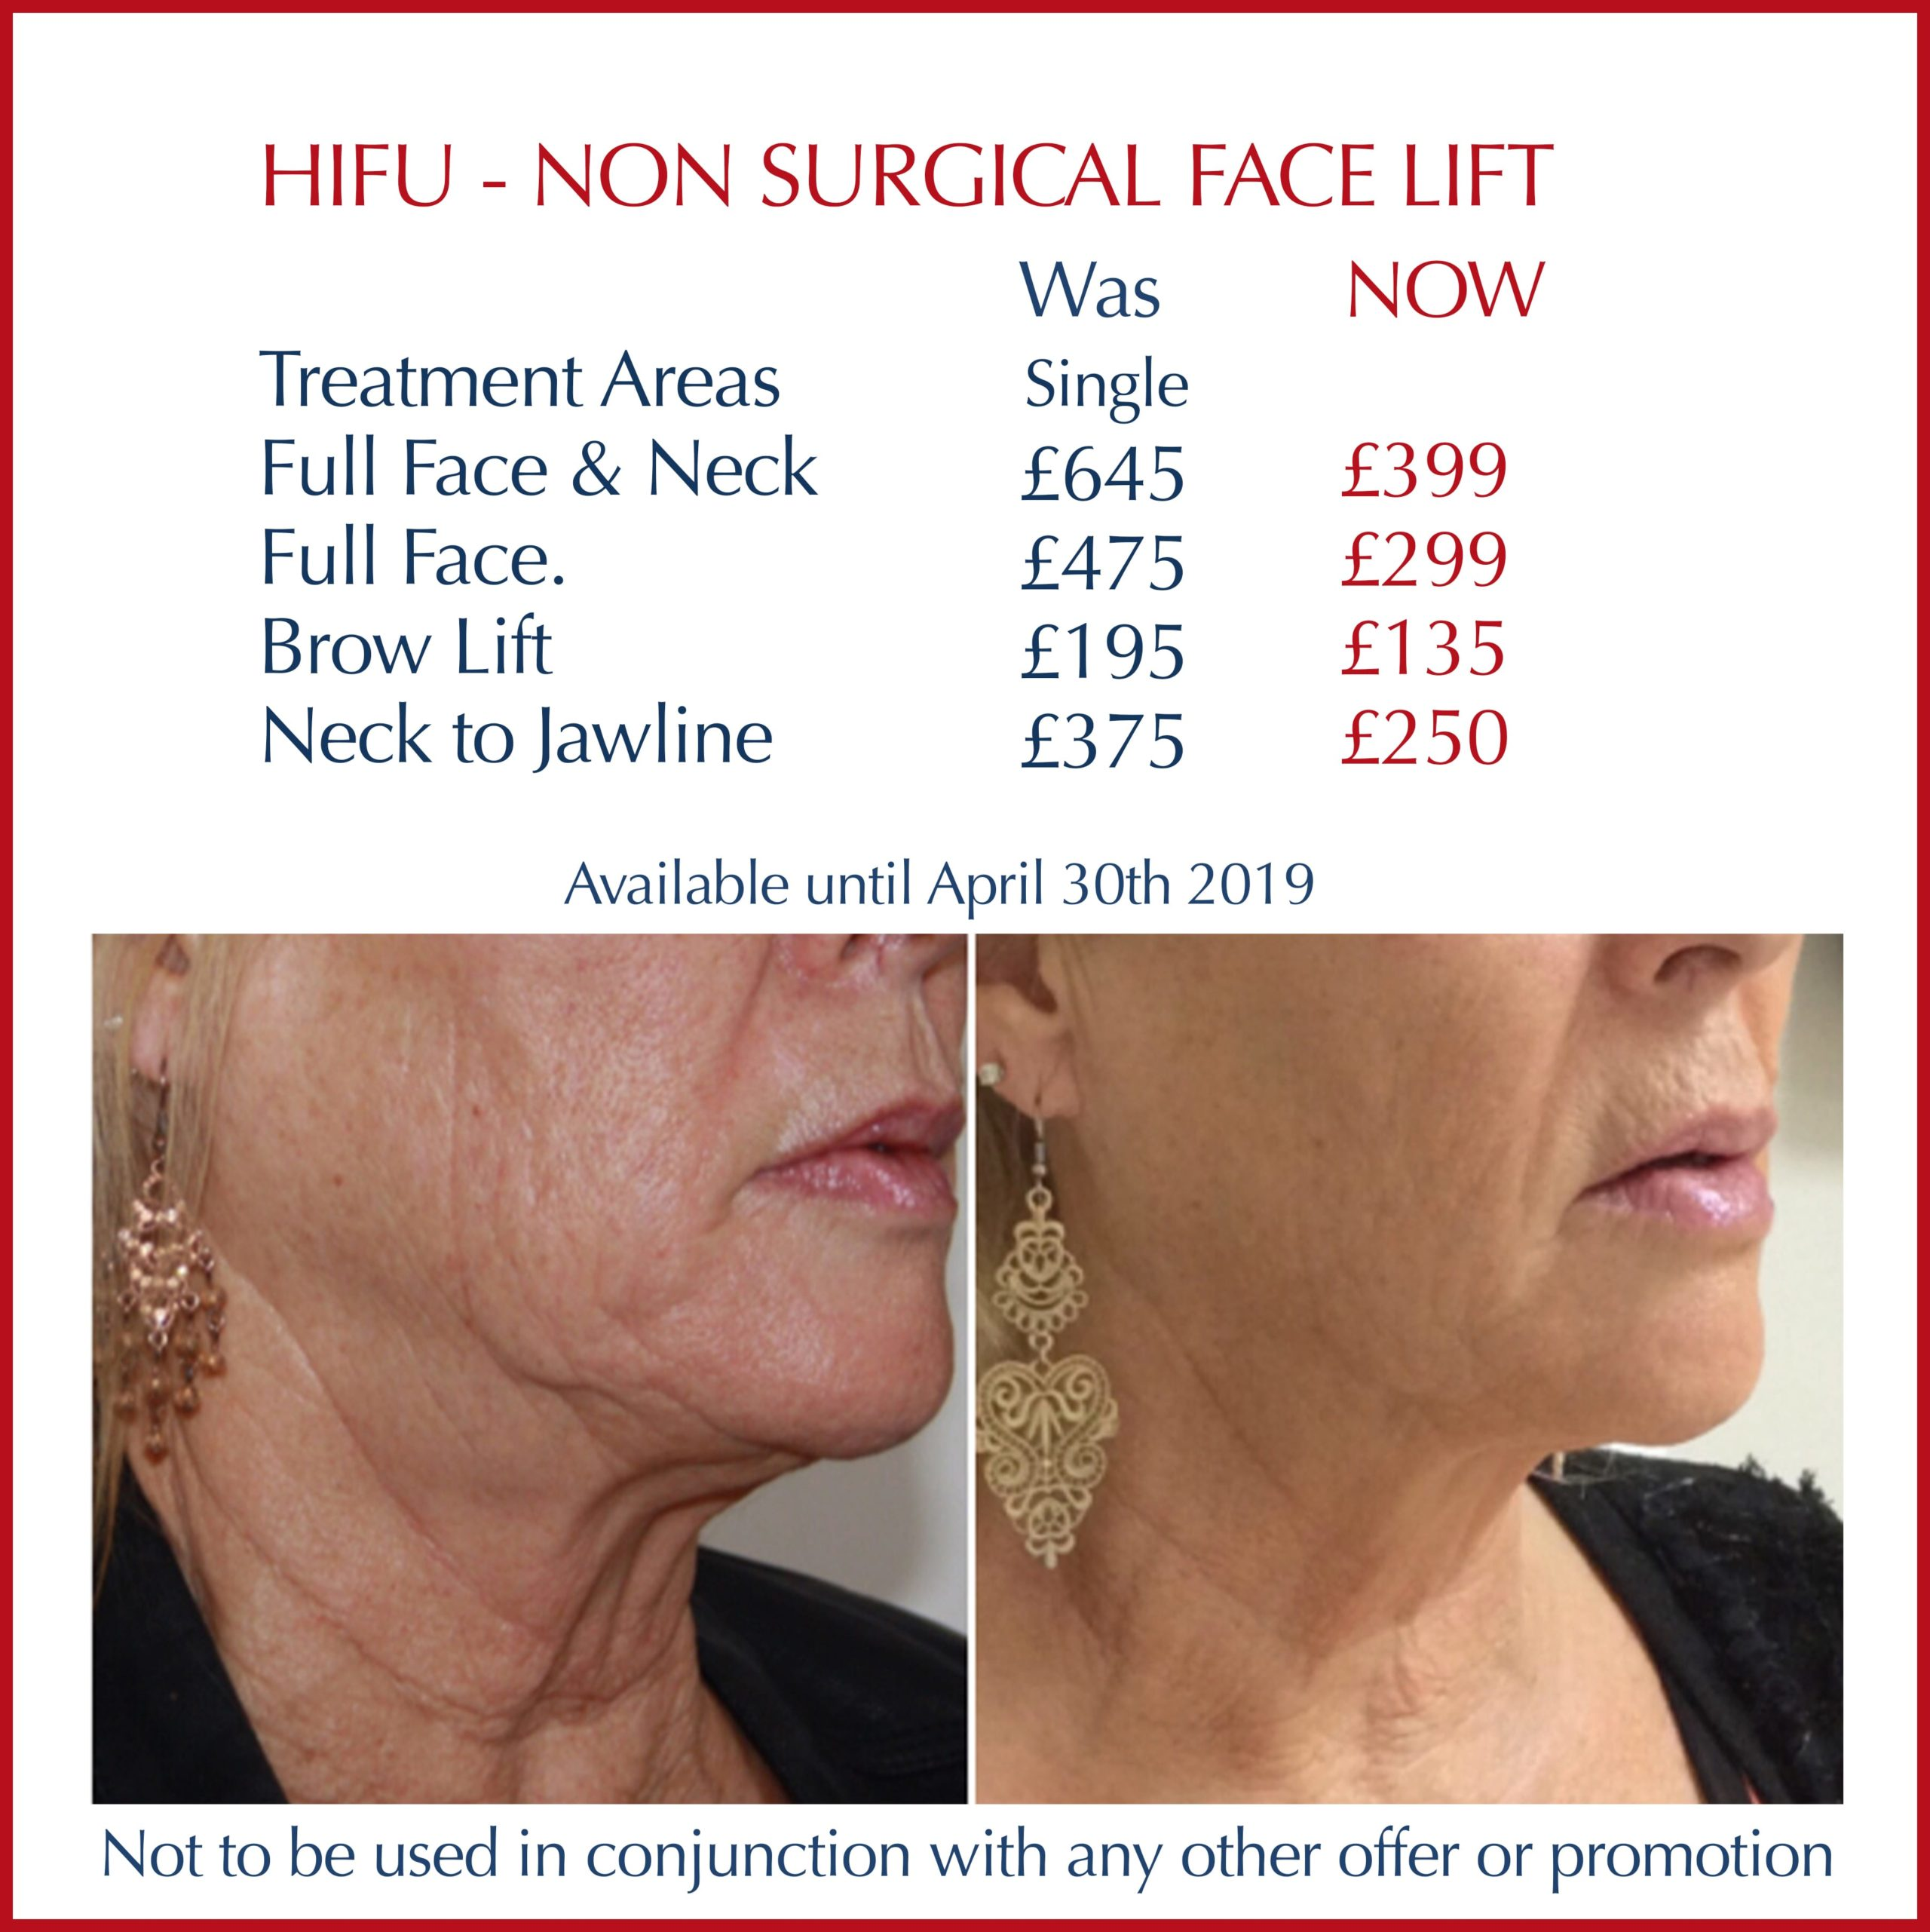 A before and after photo of a lady who has had HIFU